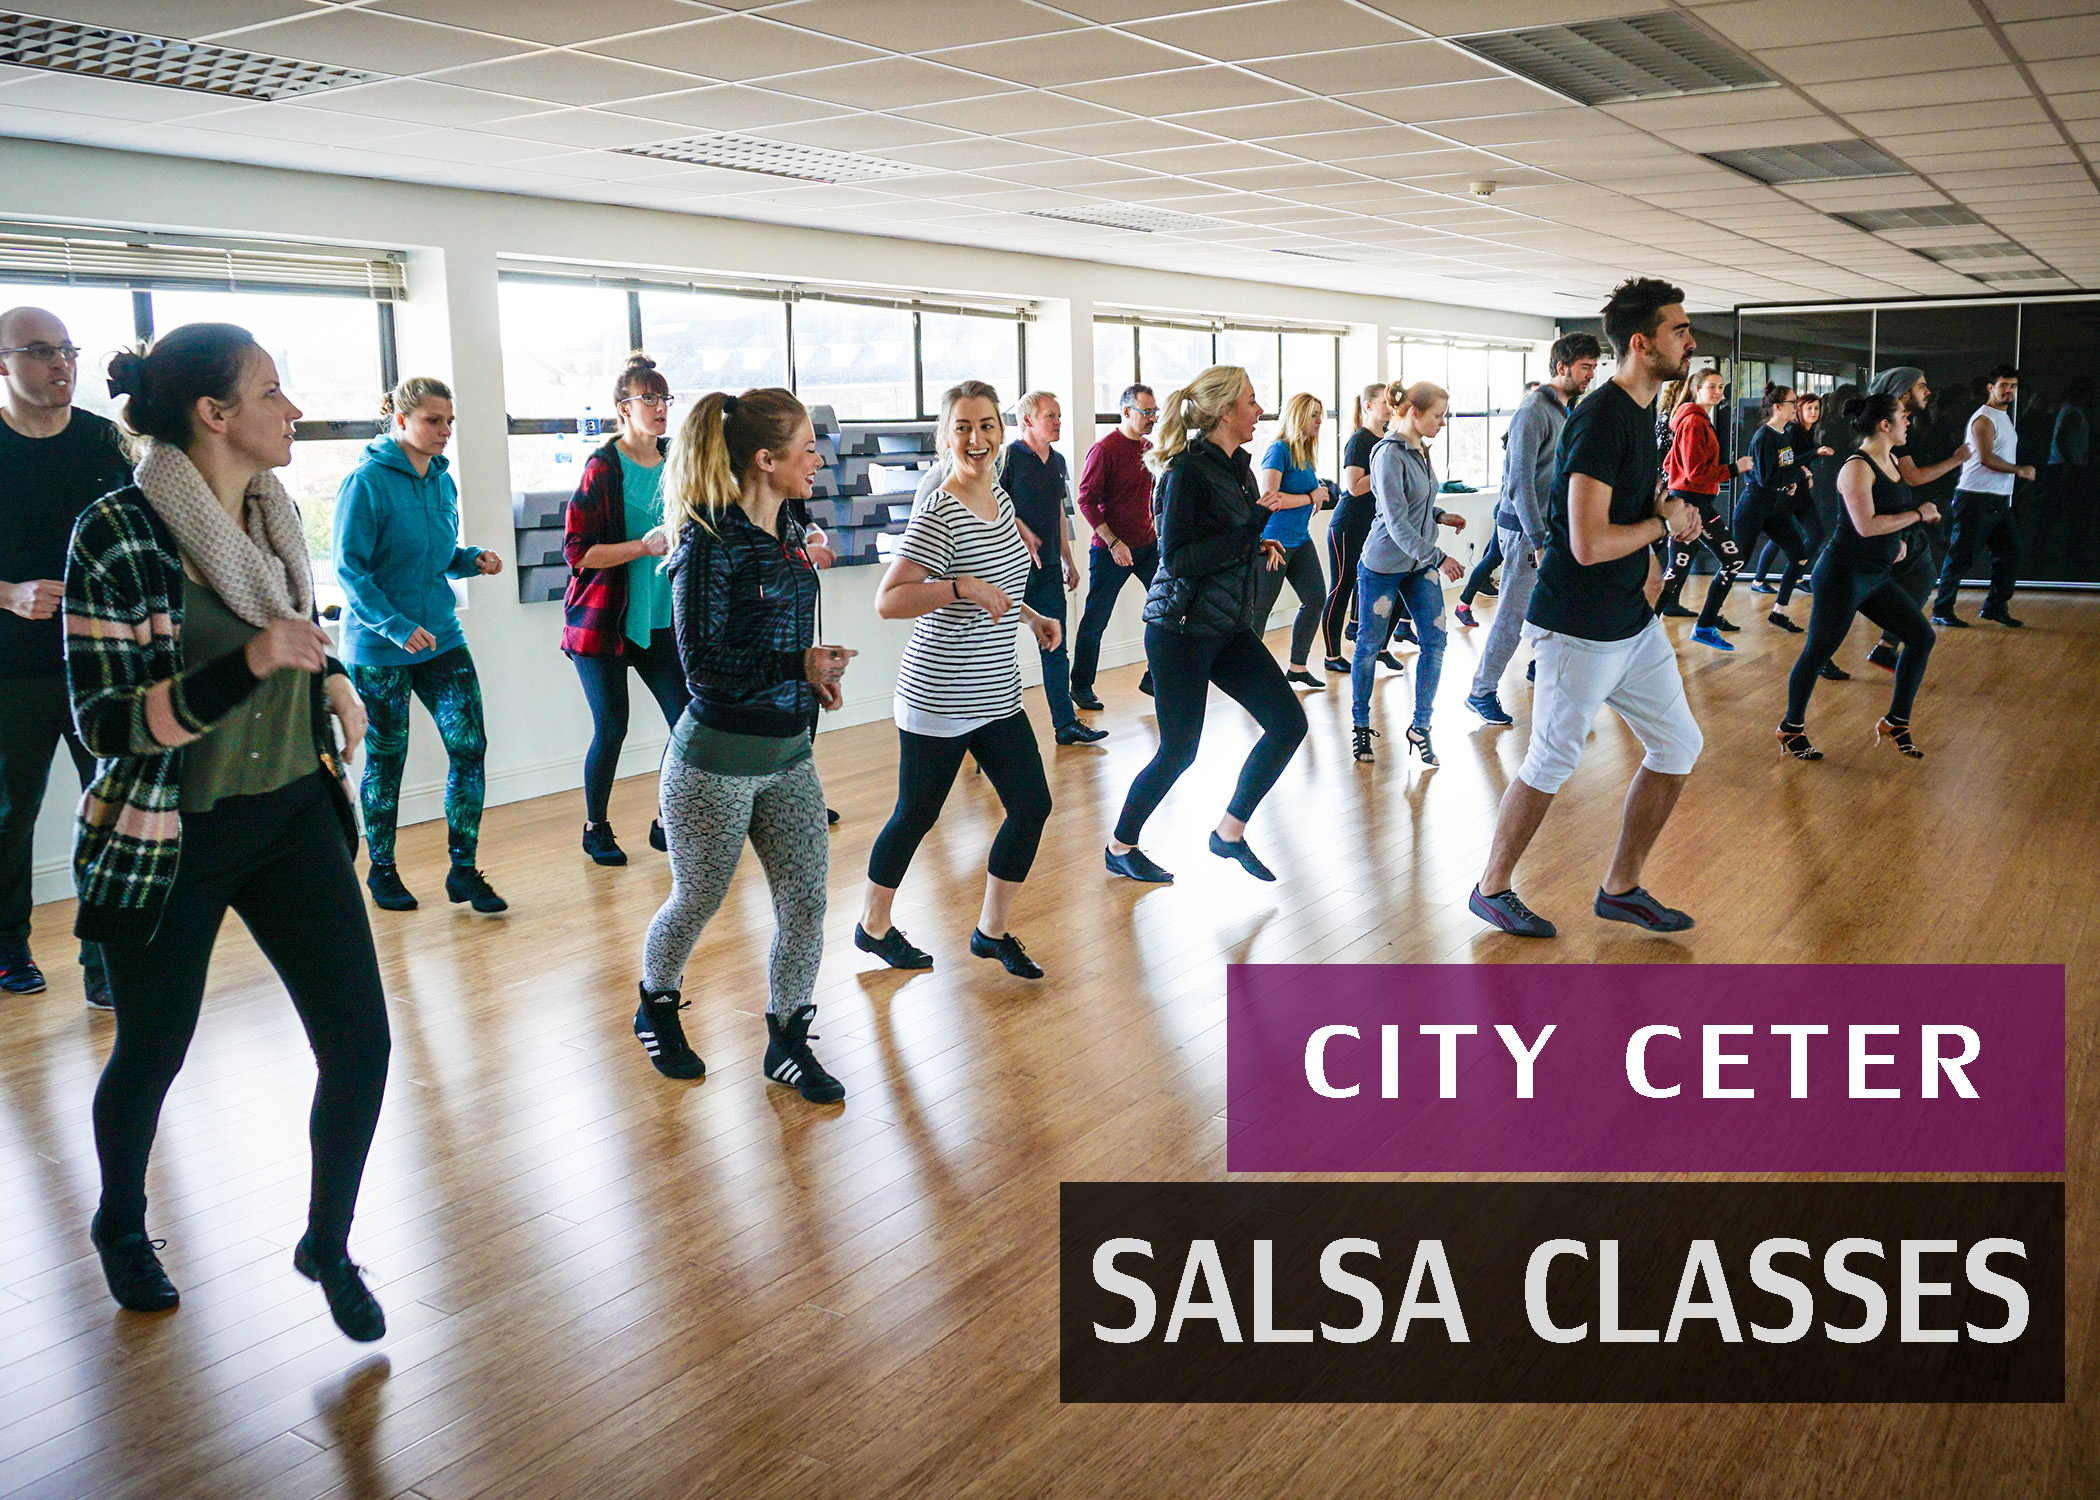 Salsa classes in Dublin